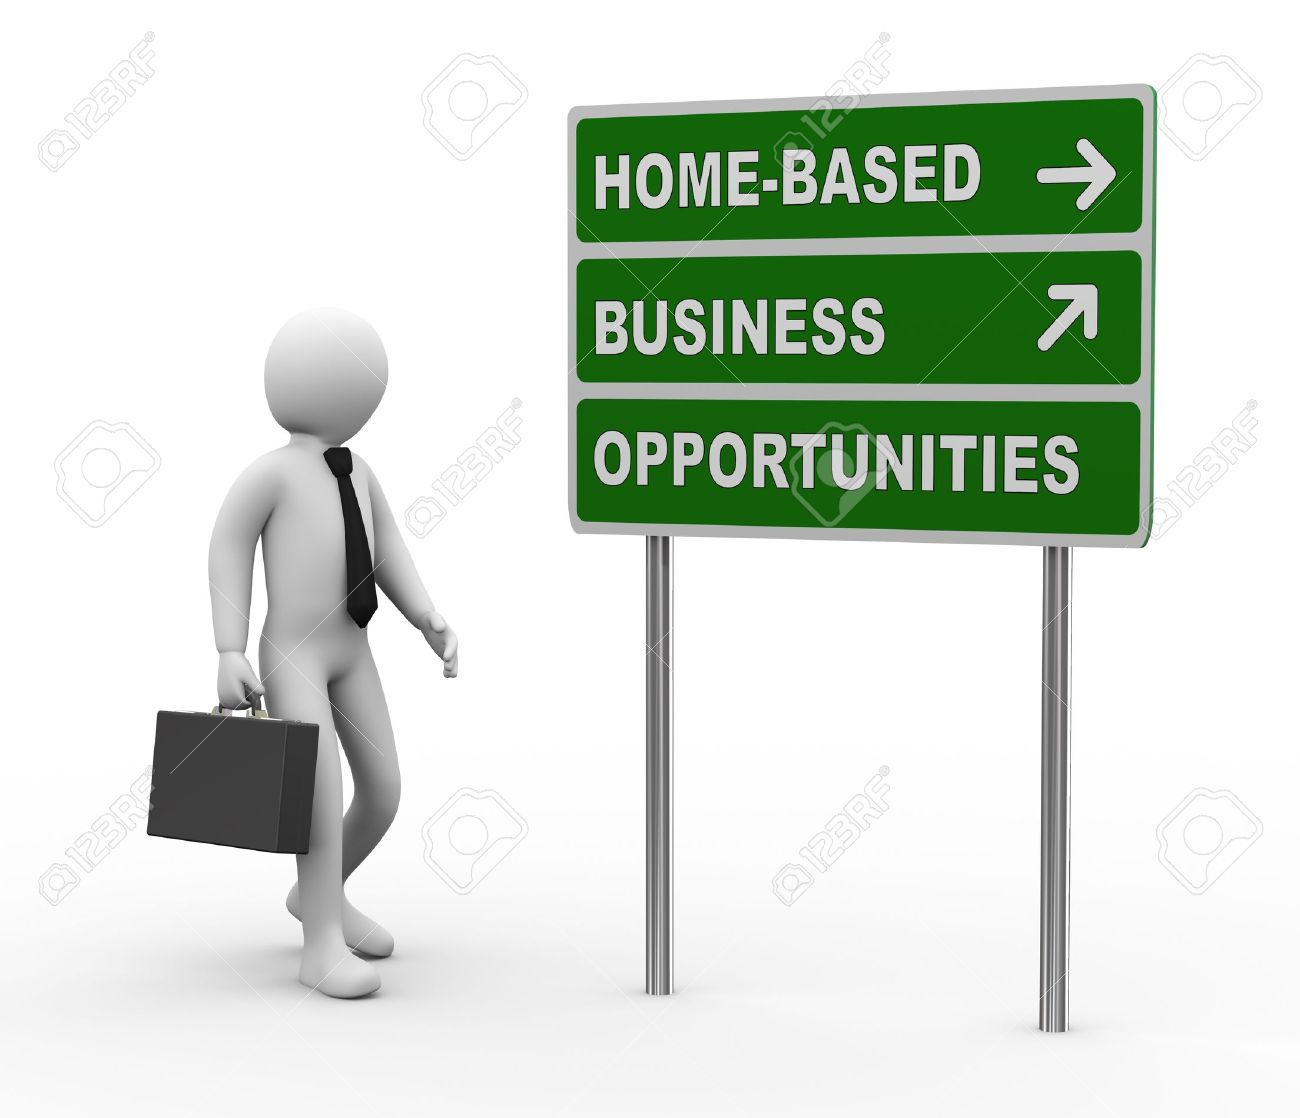 3d Illustration Of Man And Green Roadsign Of Home Based Business ...